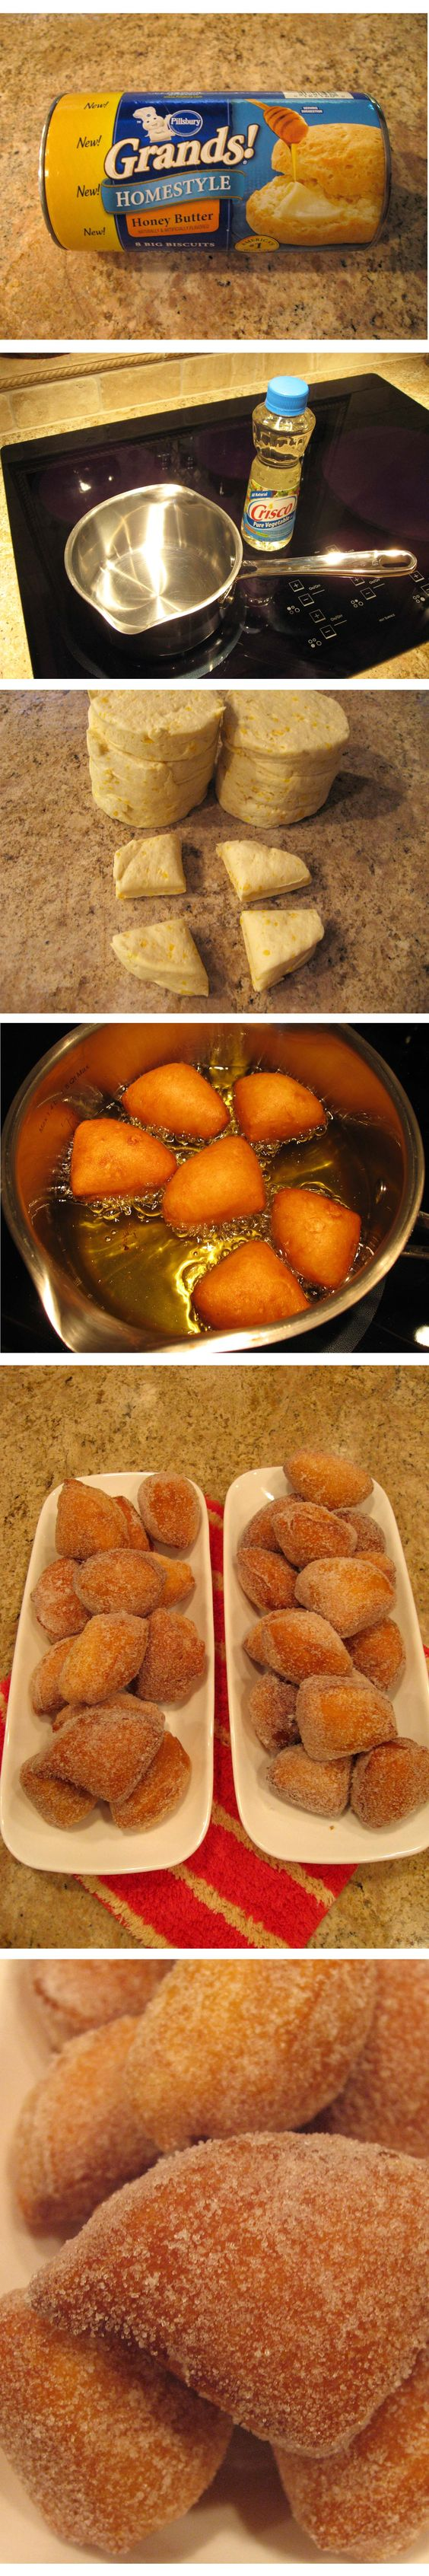 Easy Biscuit Doughnuts - Cut biscuits into quarters, drop in 200 - 240° oil for a couple of minutes (flip halfway), cool sightly on paper towel, roll in sugar, brown sugar, powdered sugar, ENJOY - best when fresh